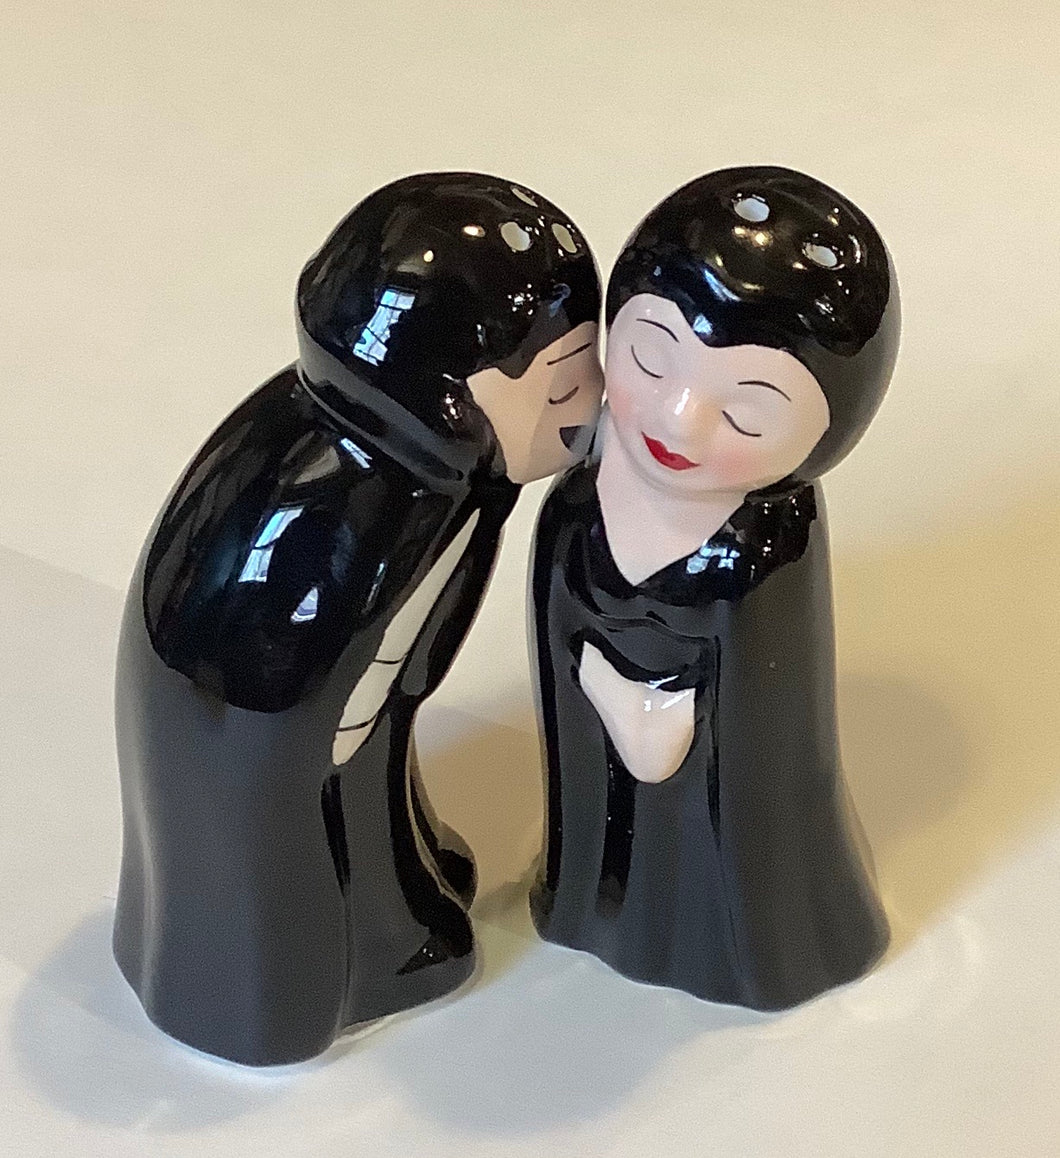 LOVE AT FIRST BITE SALT & PEPPER SHAKER SET